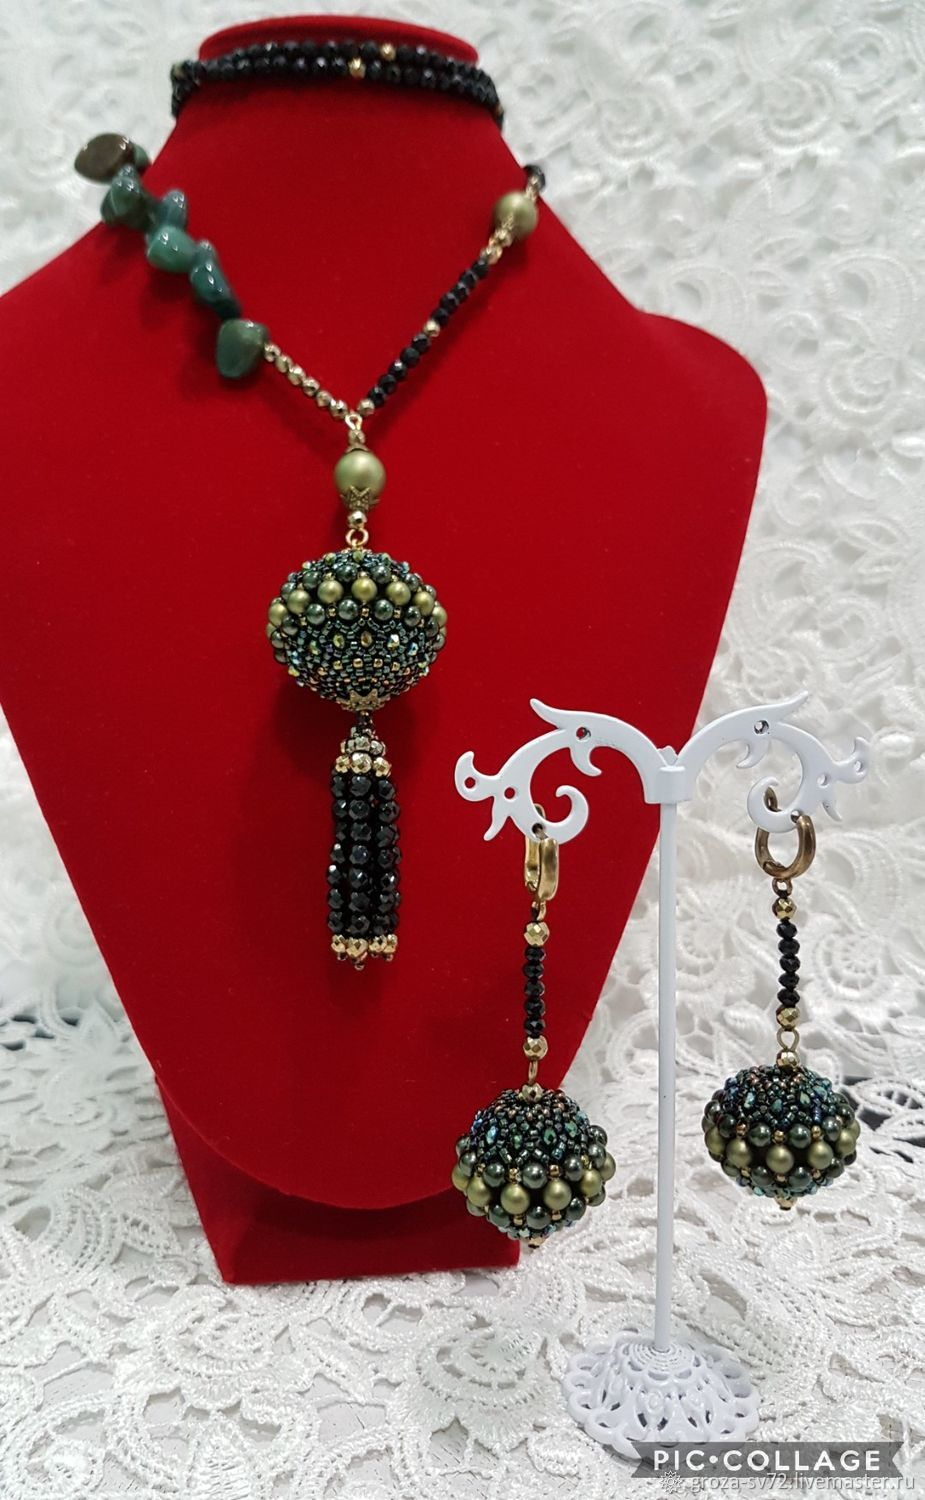 Set of beads and natural stones 'Moss', Jewelry Sets, Moscow,  Фото №1